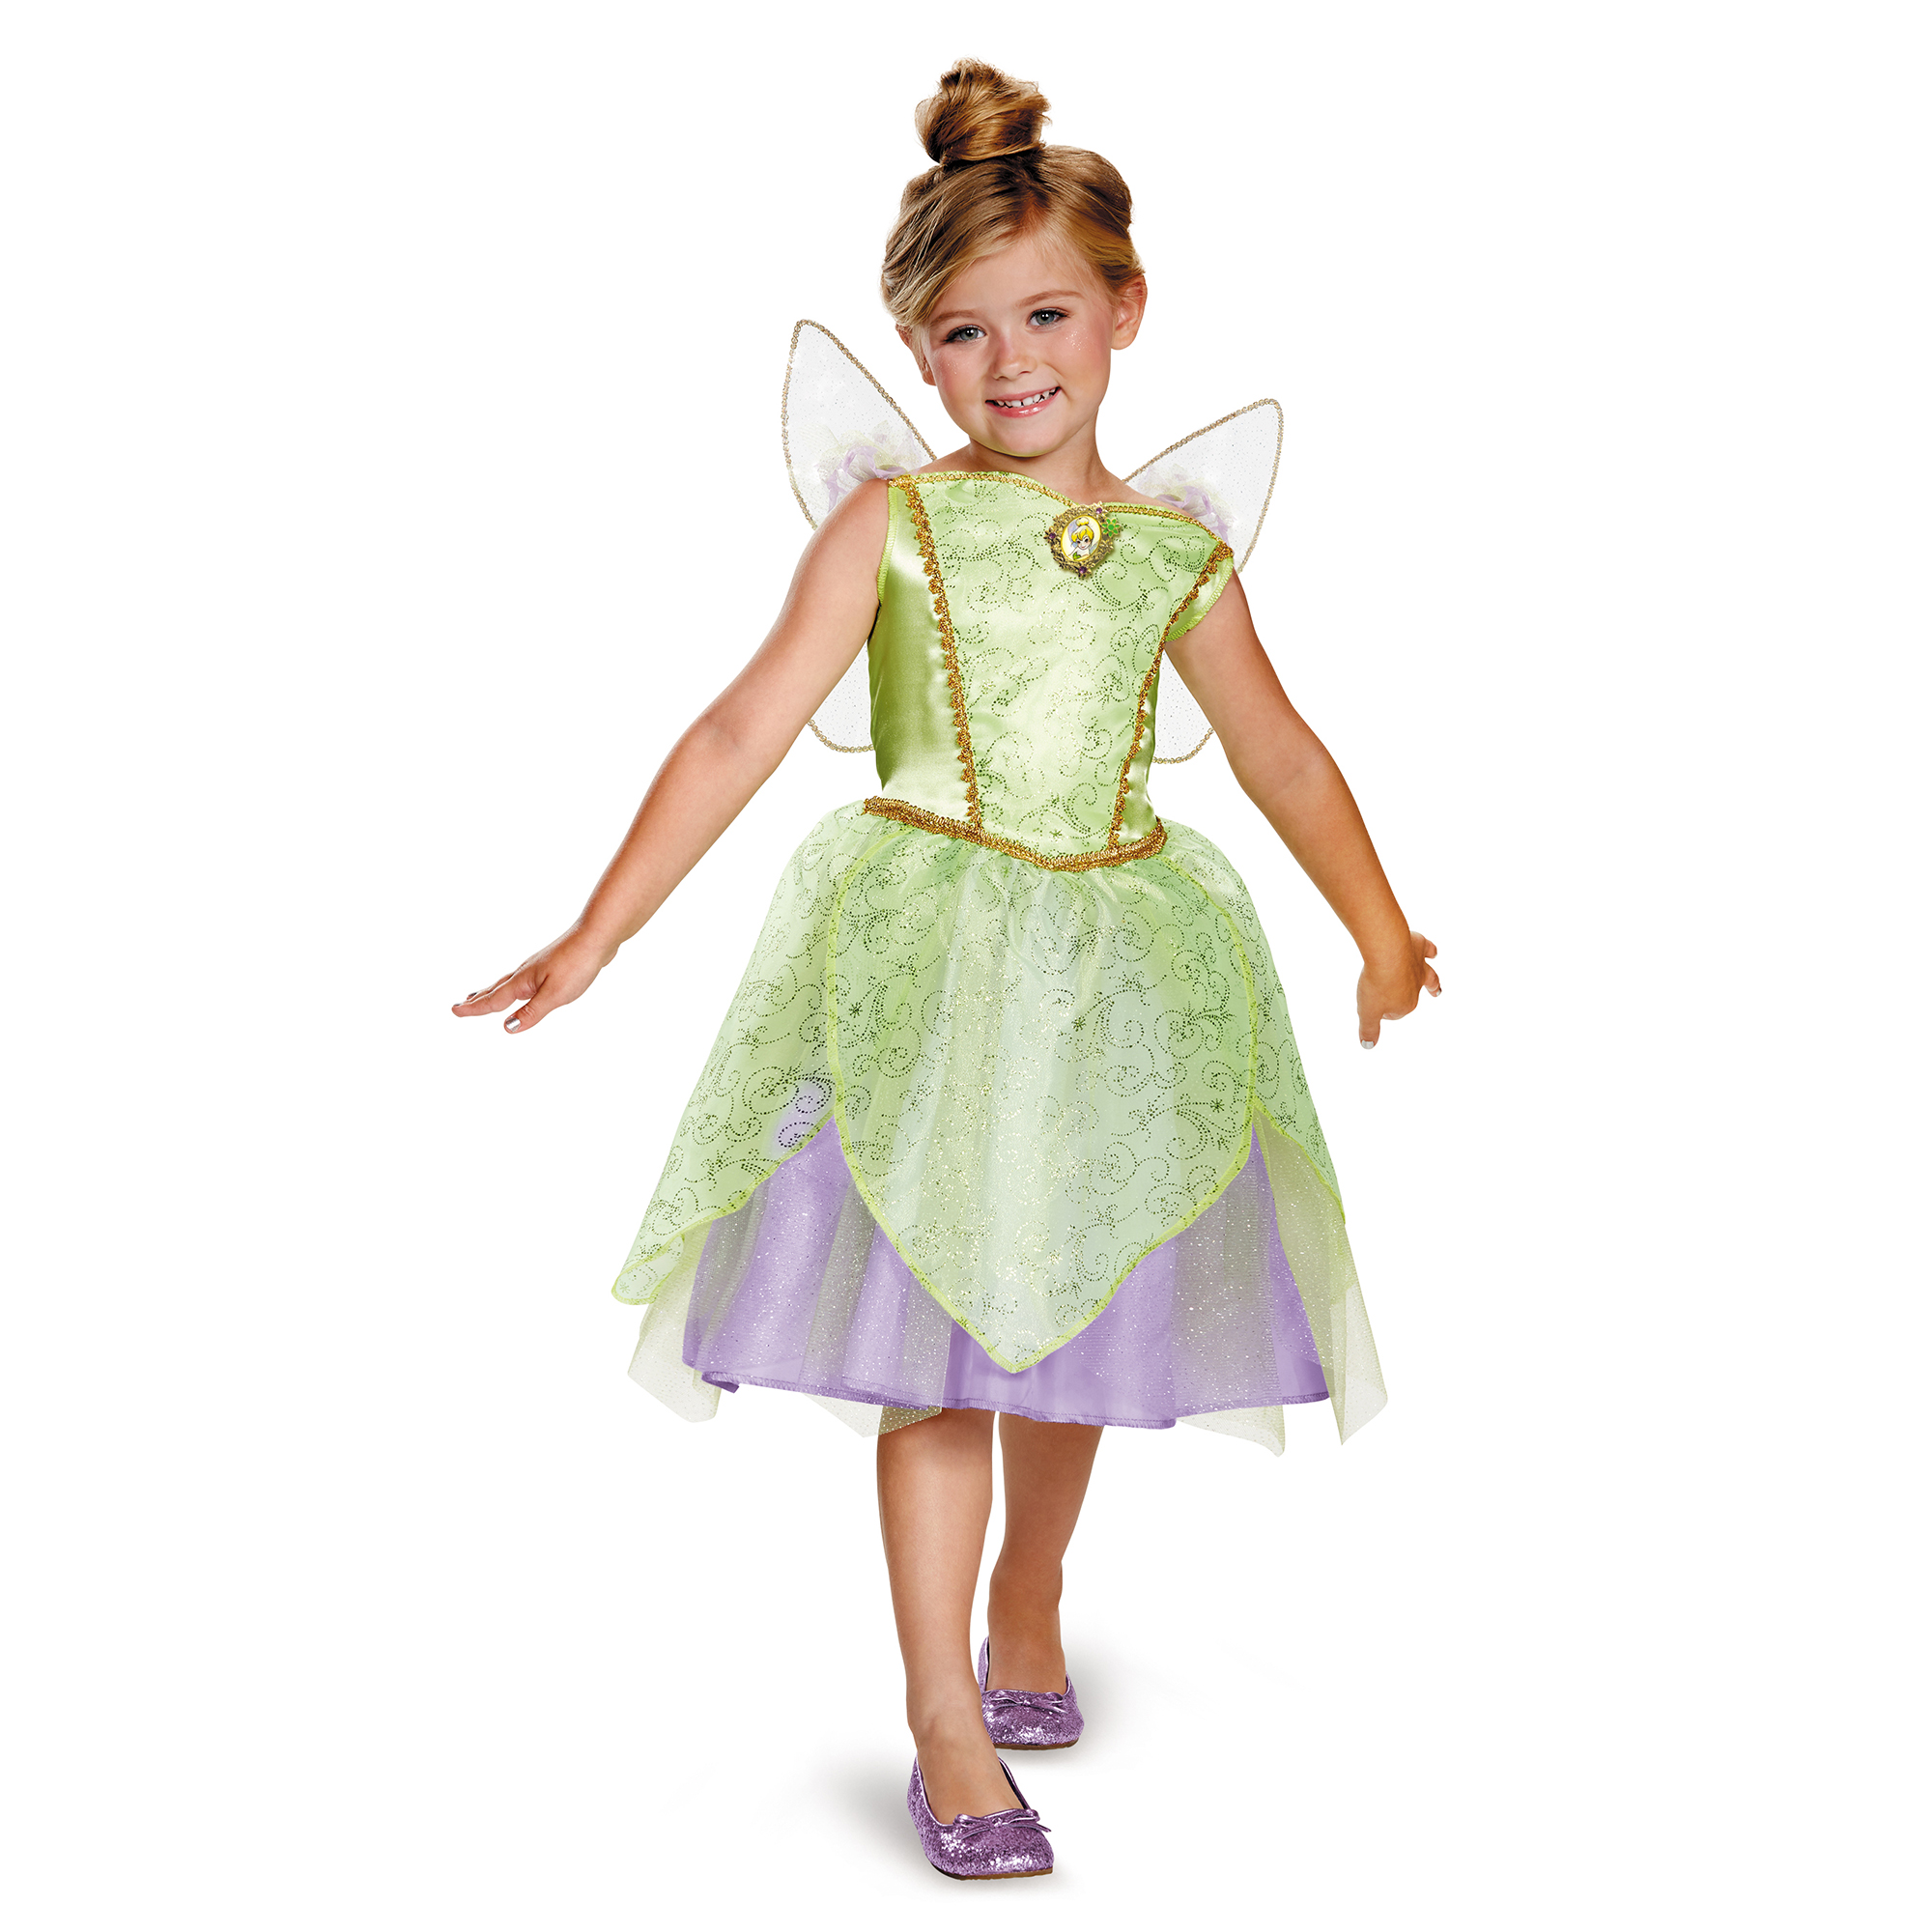 Girlsu0027 Tinker Bell Classic Costume  sc 1 st  Walmart & Tinkerbell Costumes